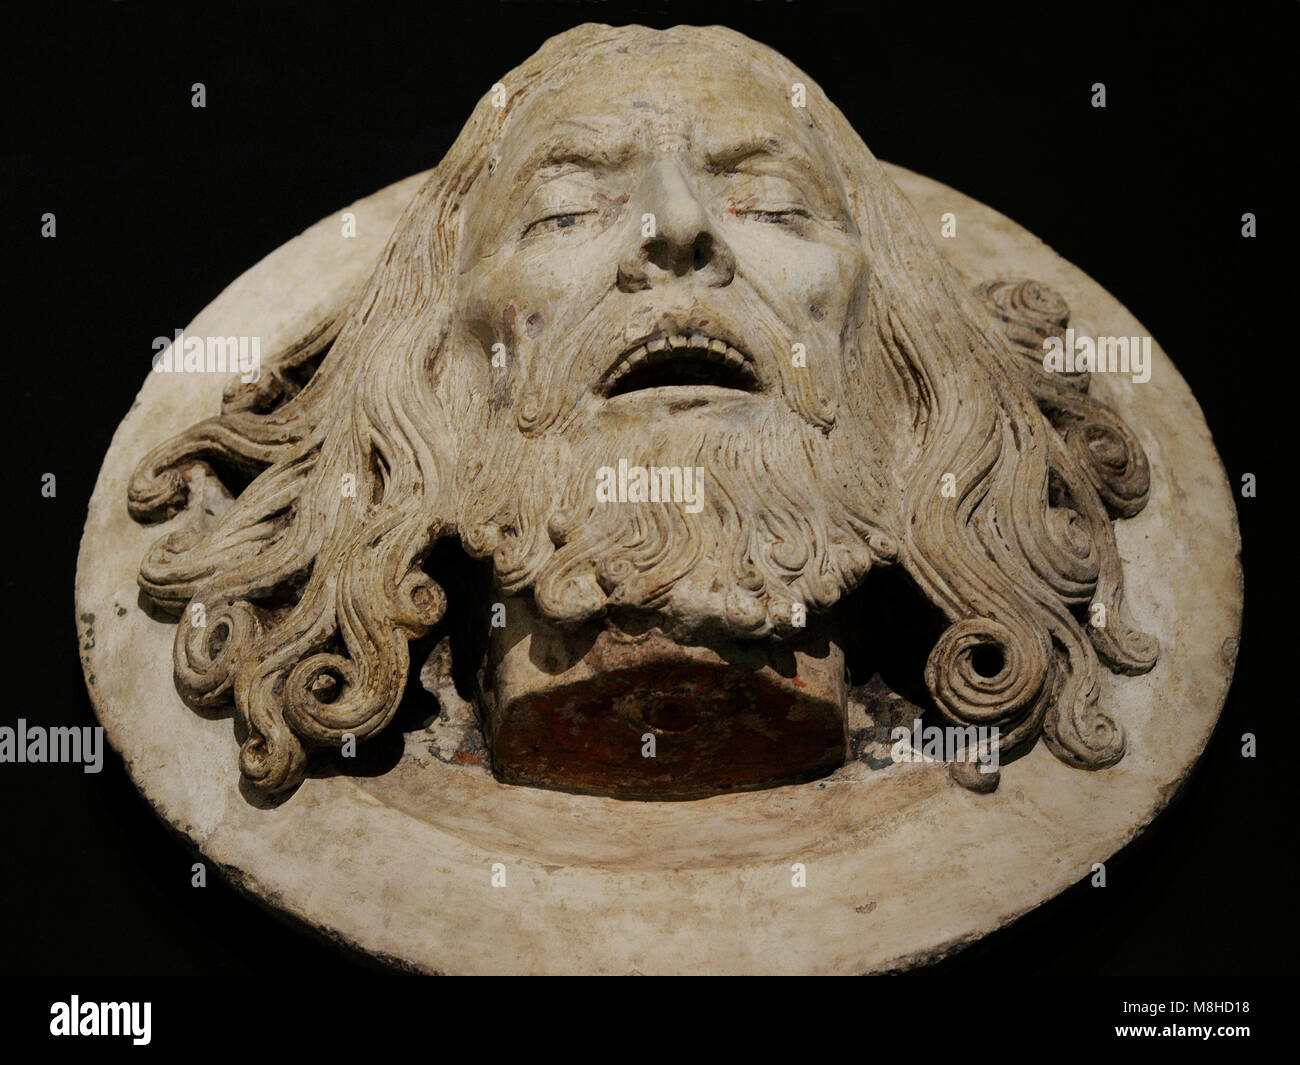 Head of st. John the Baptist on a platter. Rhineland, c. 1480-1520. Limestone, remains of polychromy. Museum Schnütgen. - Stock Image